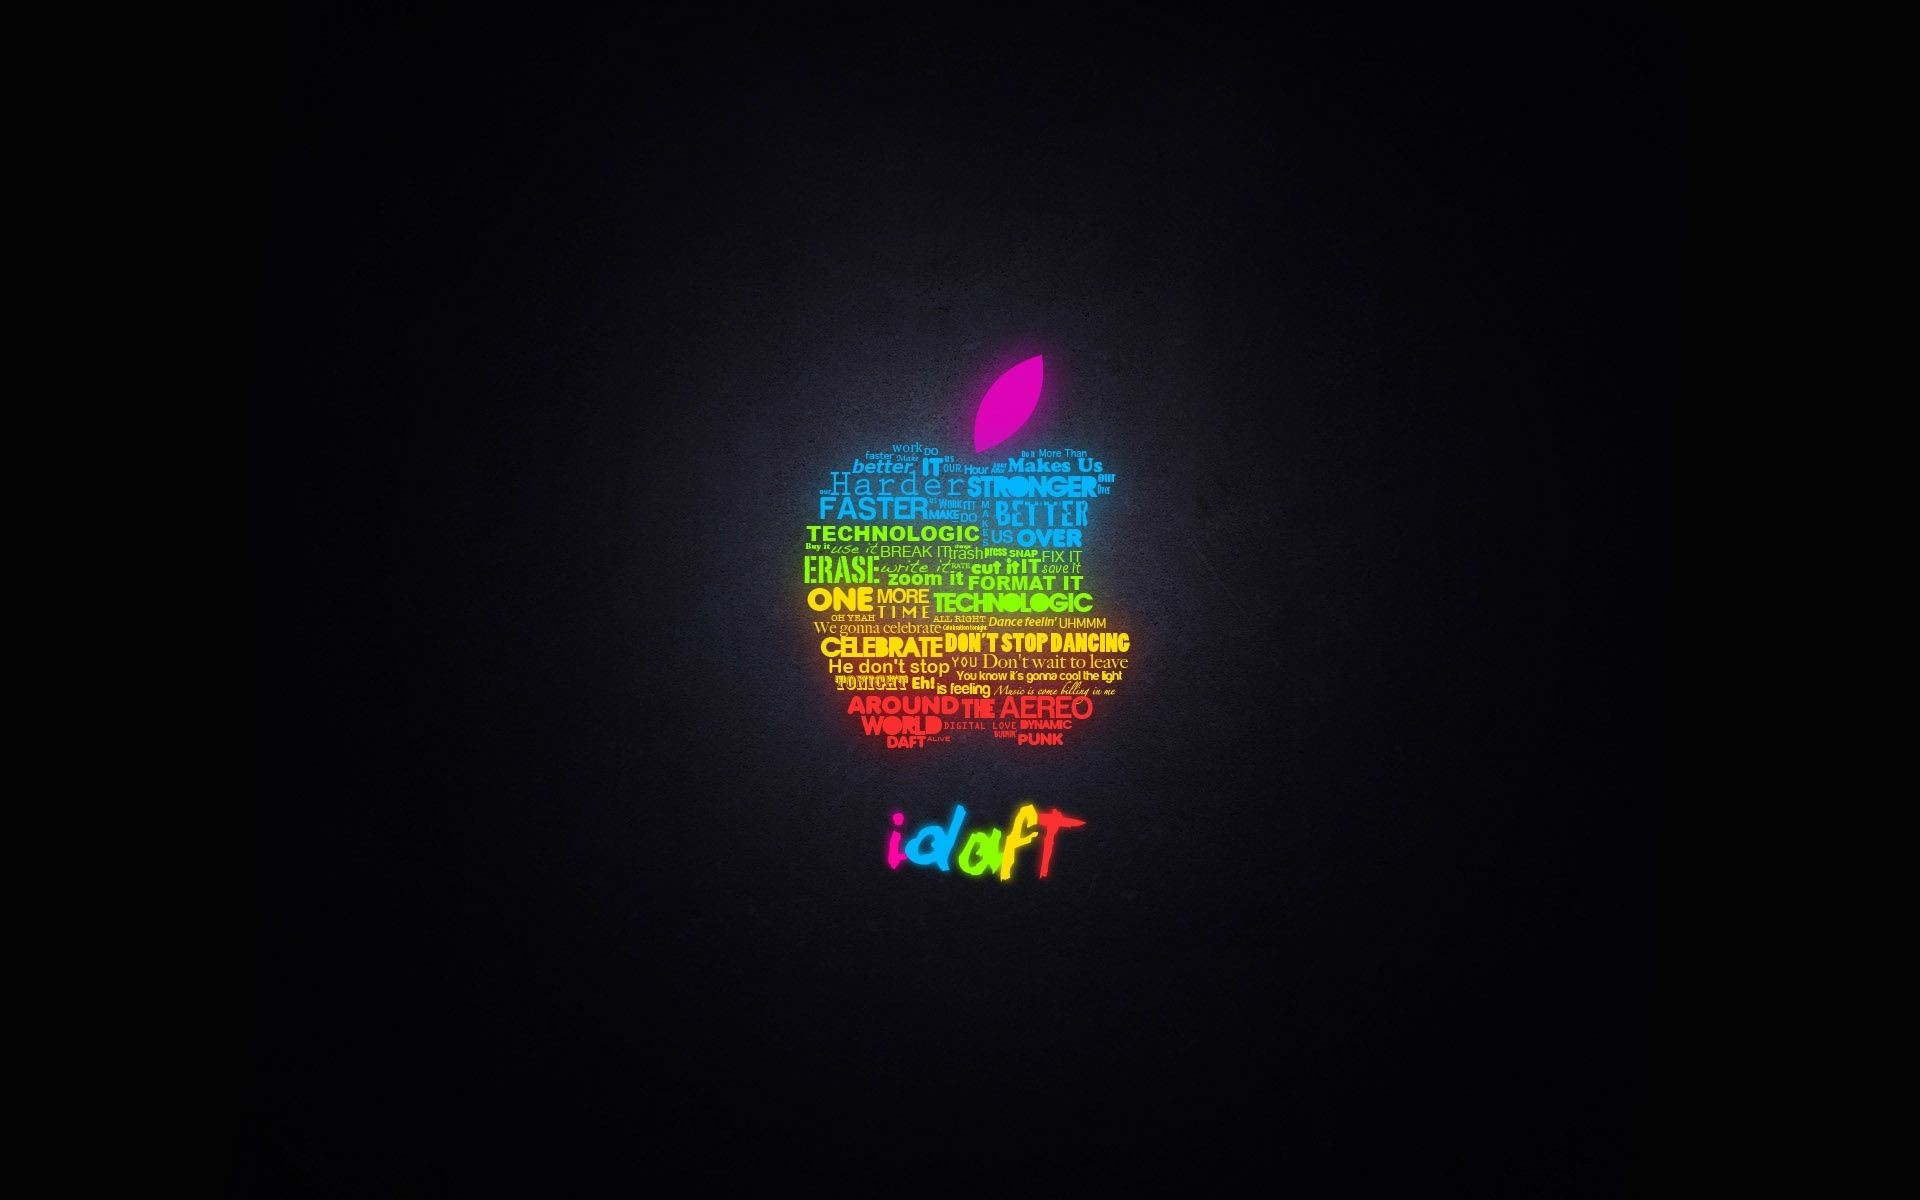 1920x1200 Apple In Words HD Desktop Wallpaper, Background Image